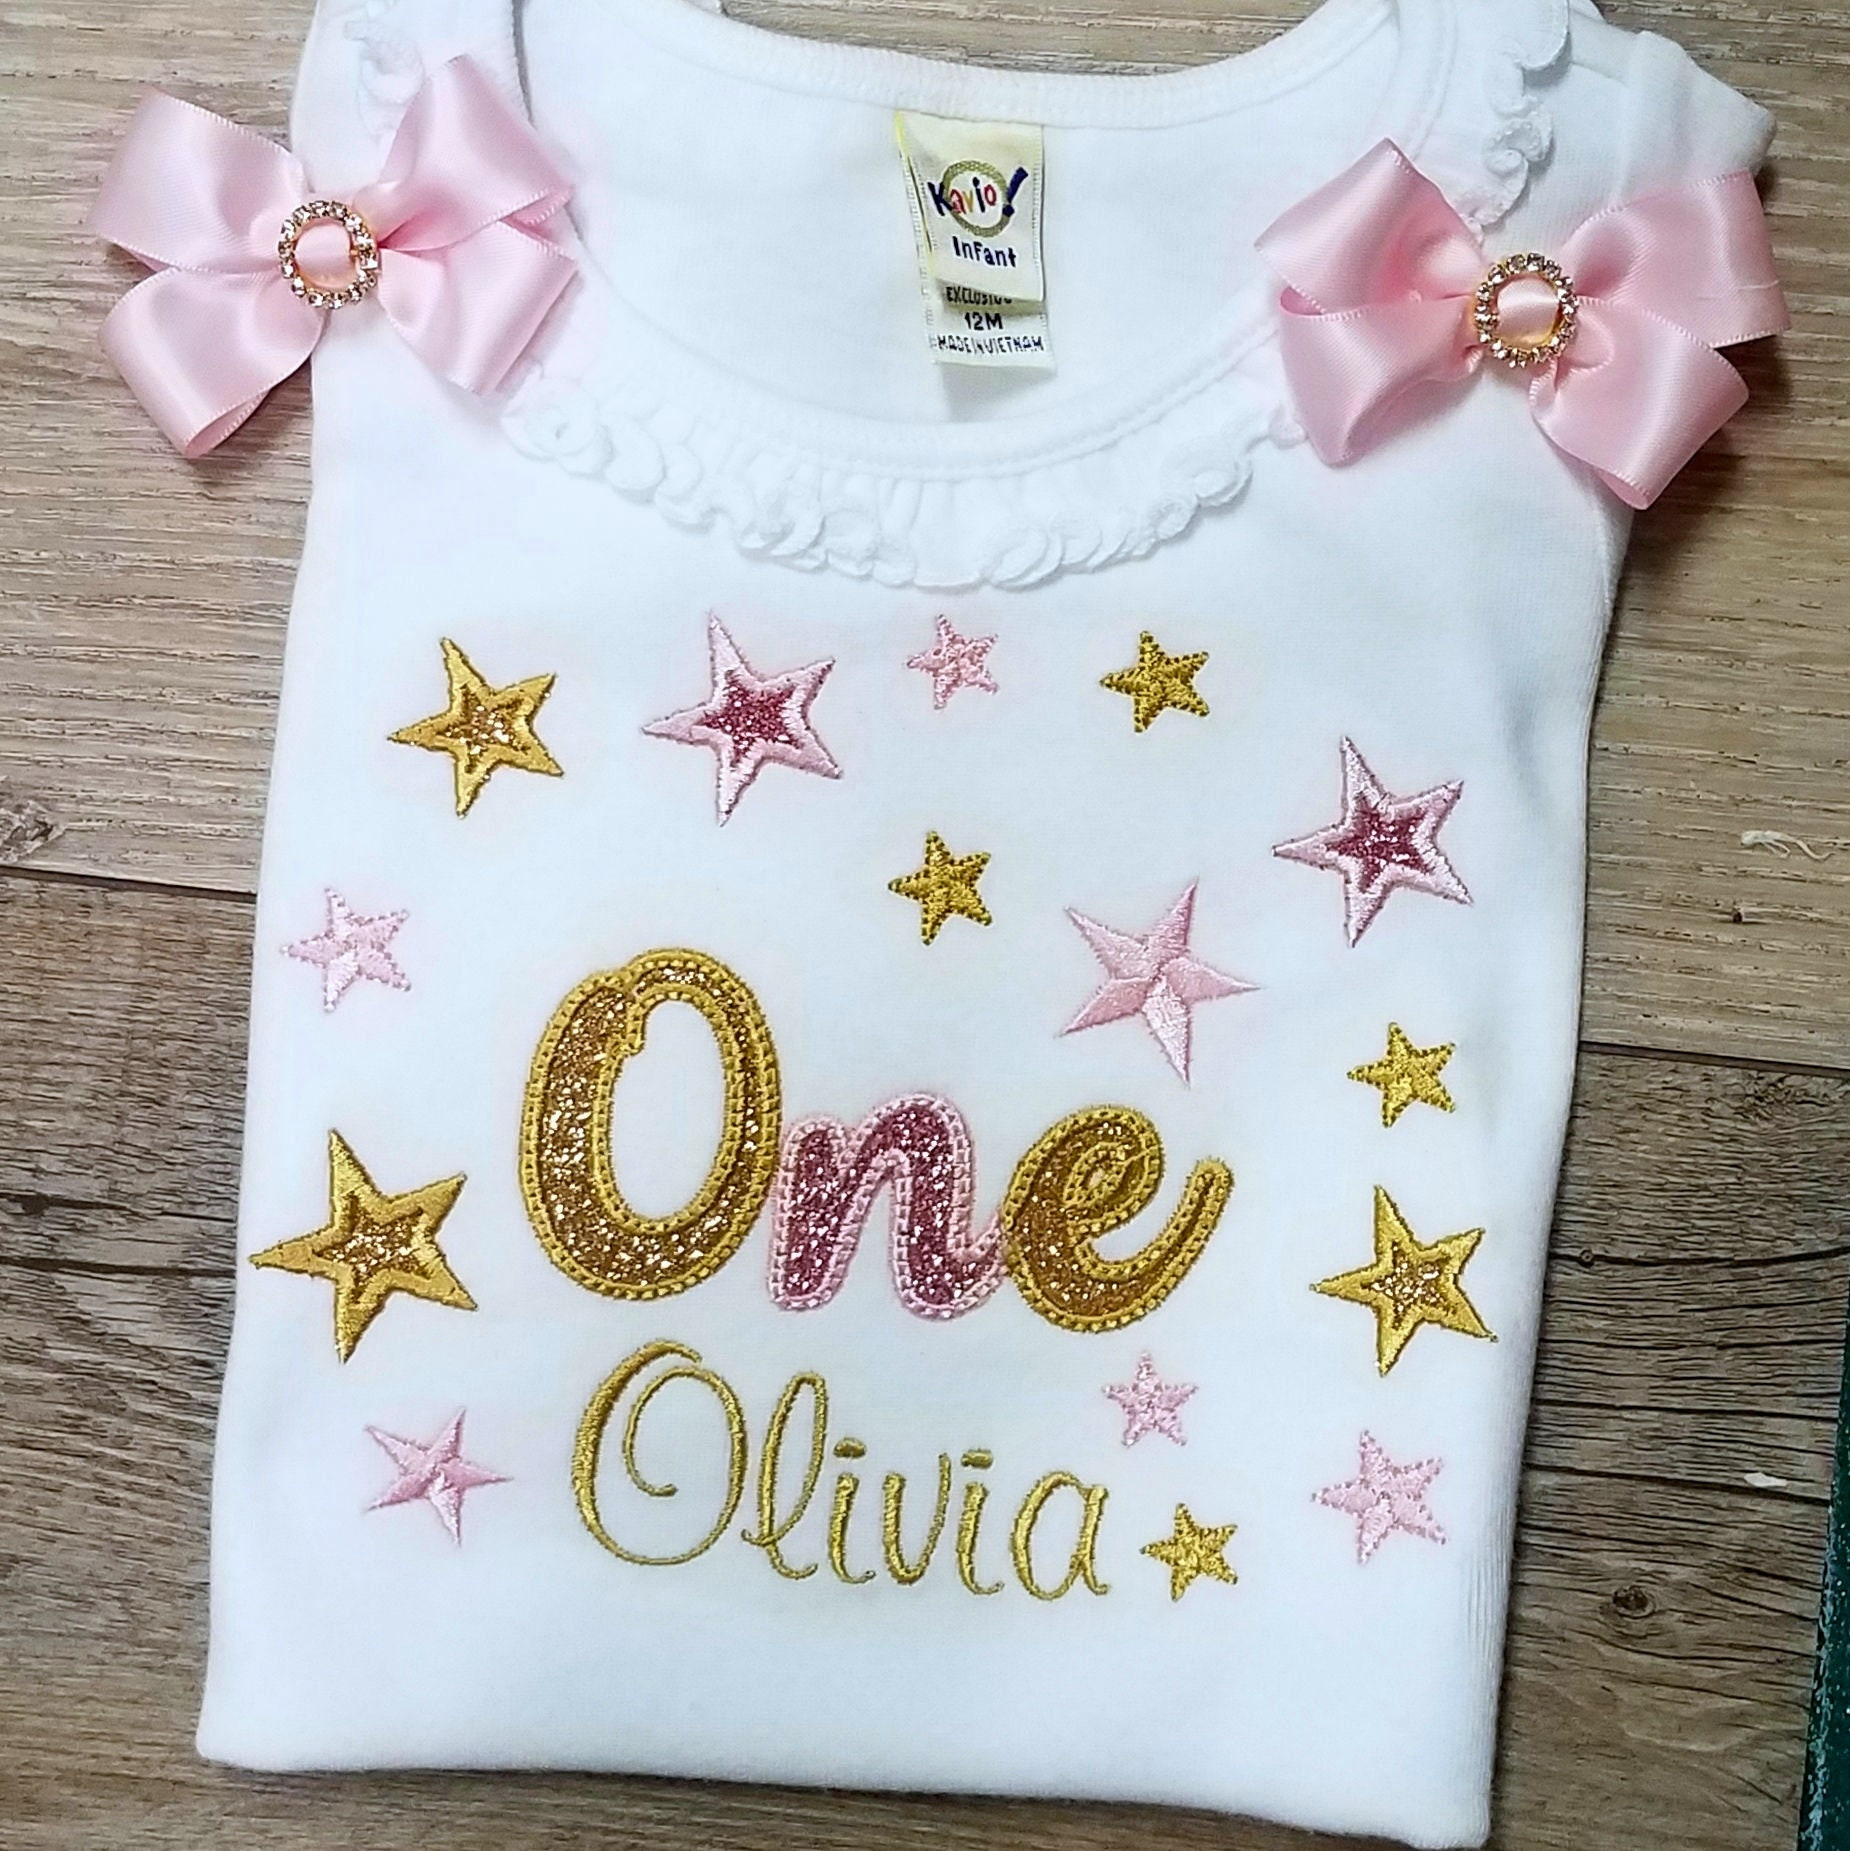 personalized birthday shirt 1st birthday shirt sparkle one birthday shirt with stars, Glitter birthday custom made personalized shirt